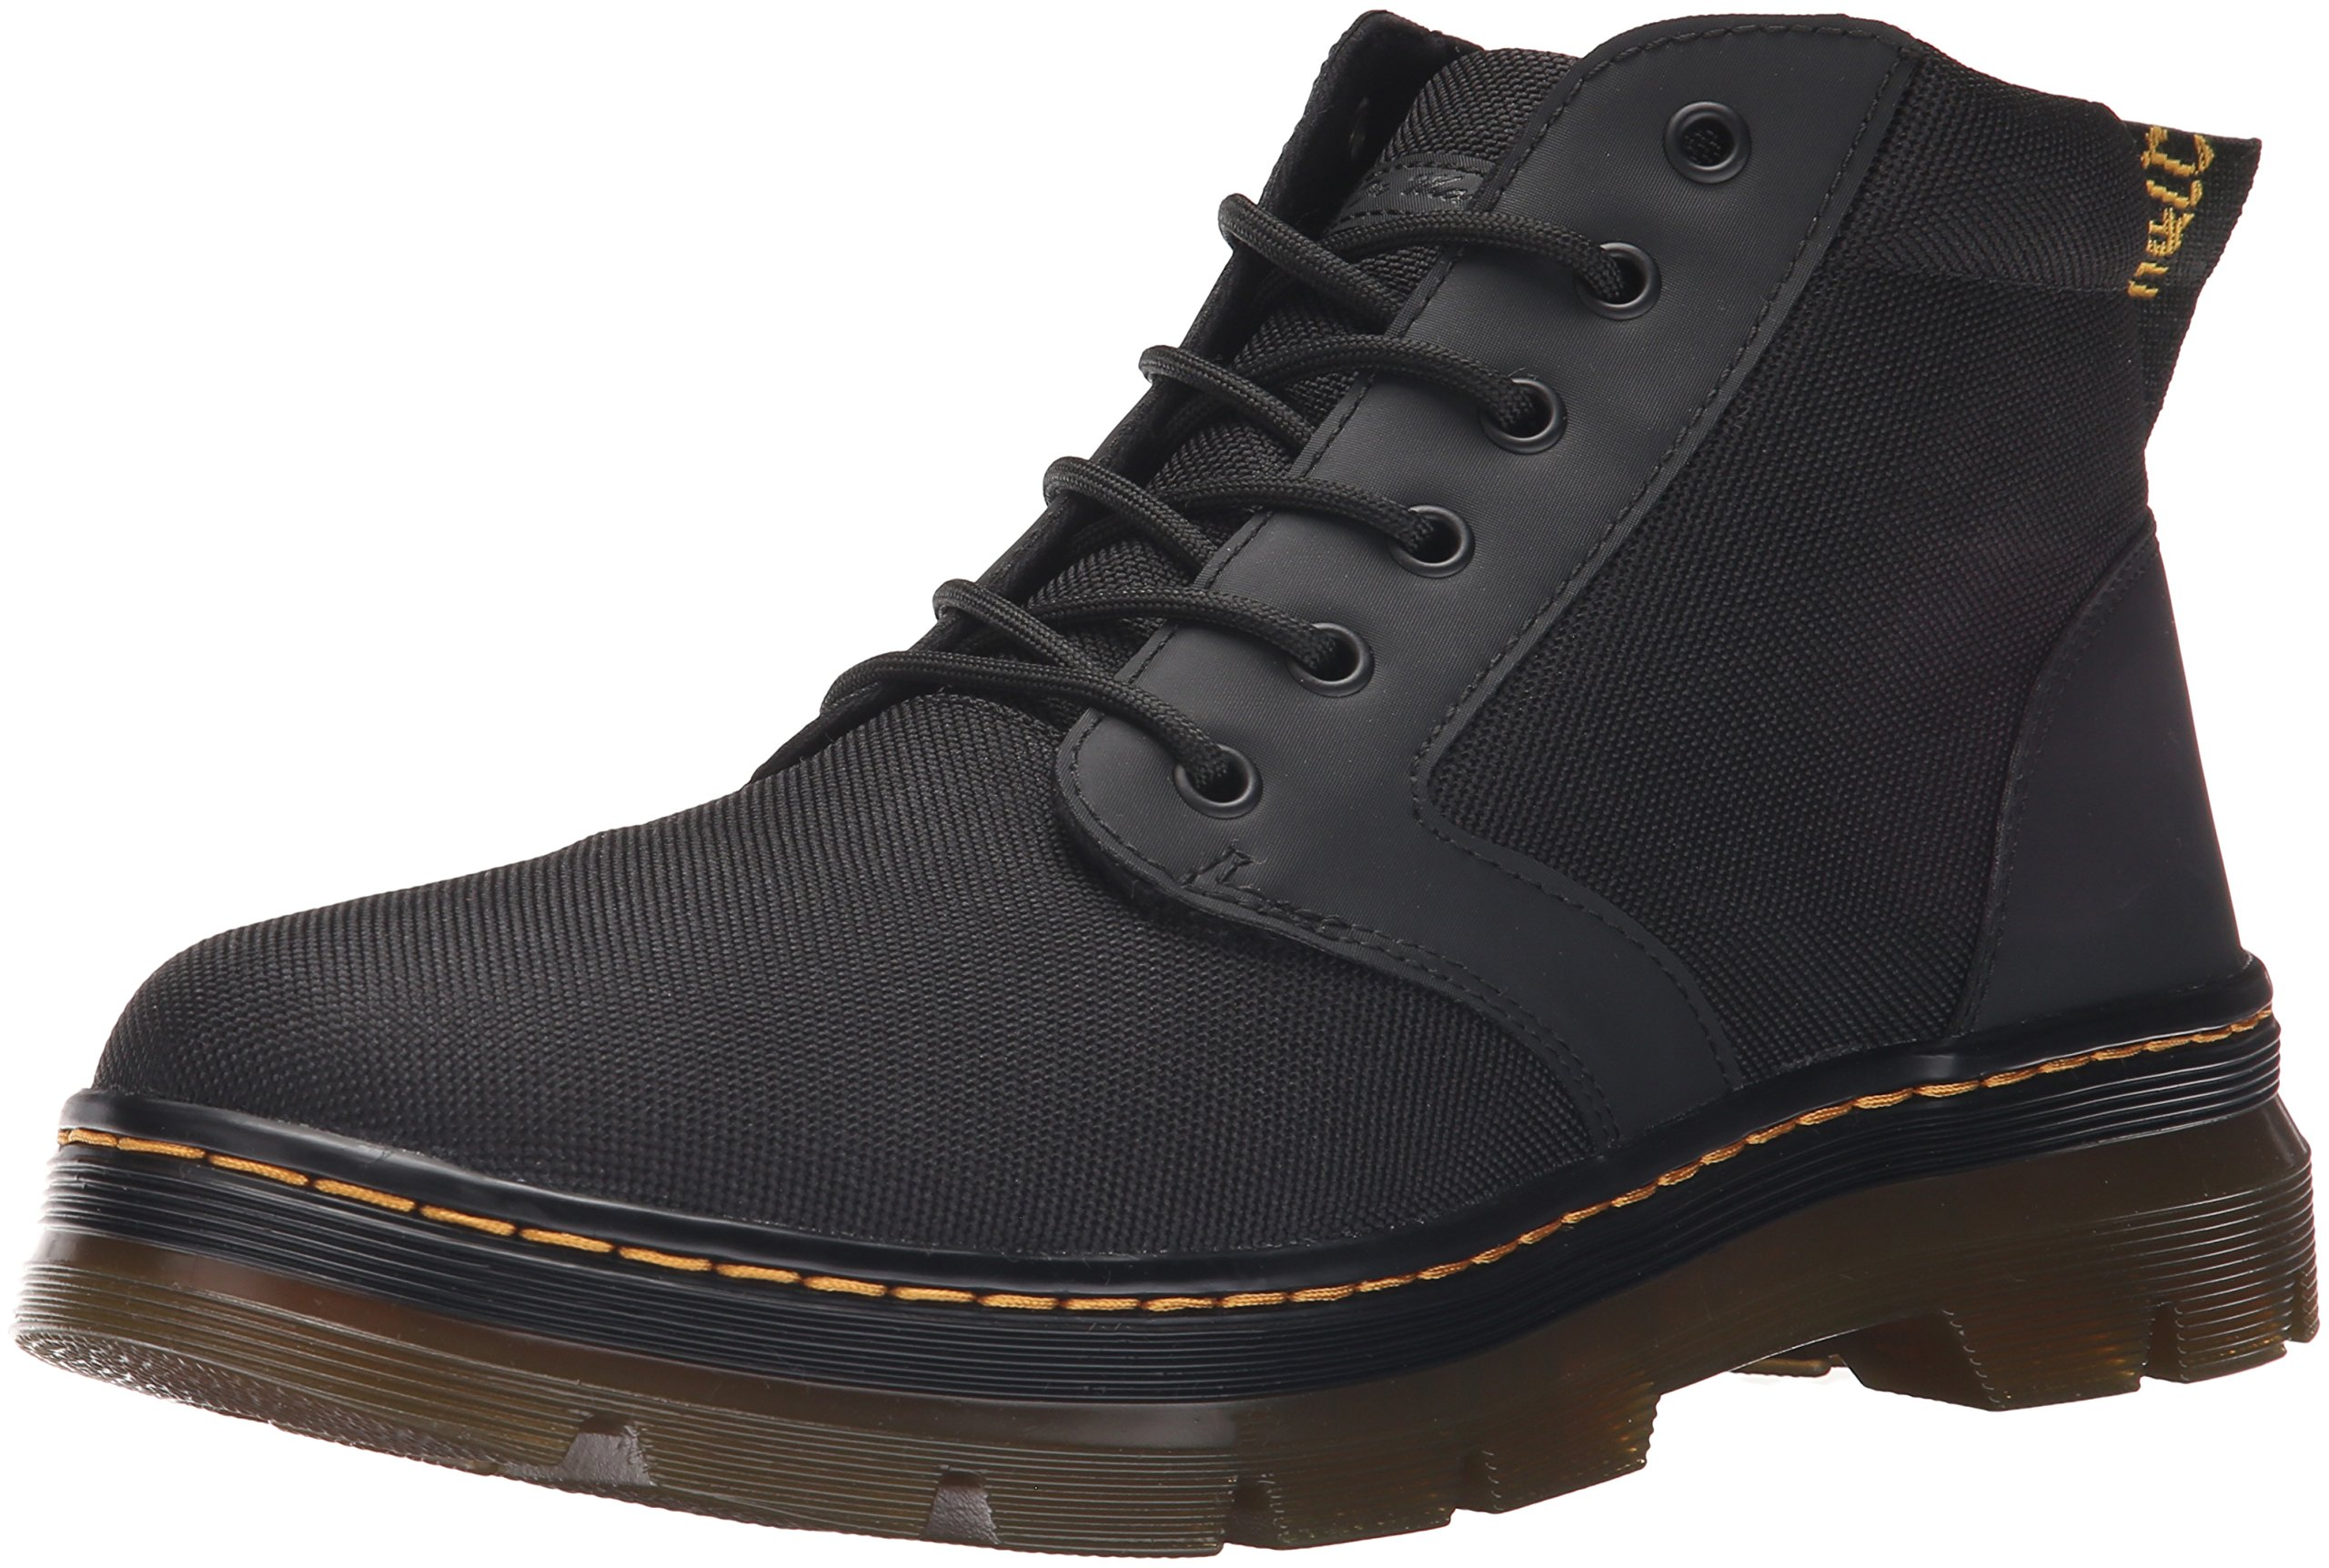 Dr. Martens Bonny Boot, Black, 9 Medium UK (US Men's 10, Women's 11 US) by Dr. Martens